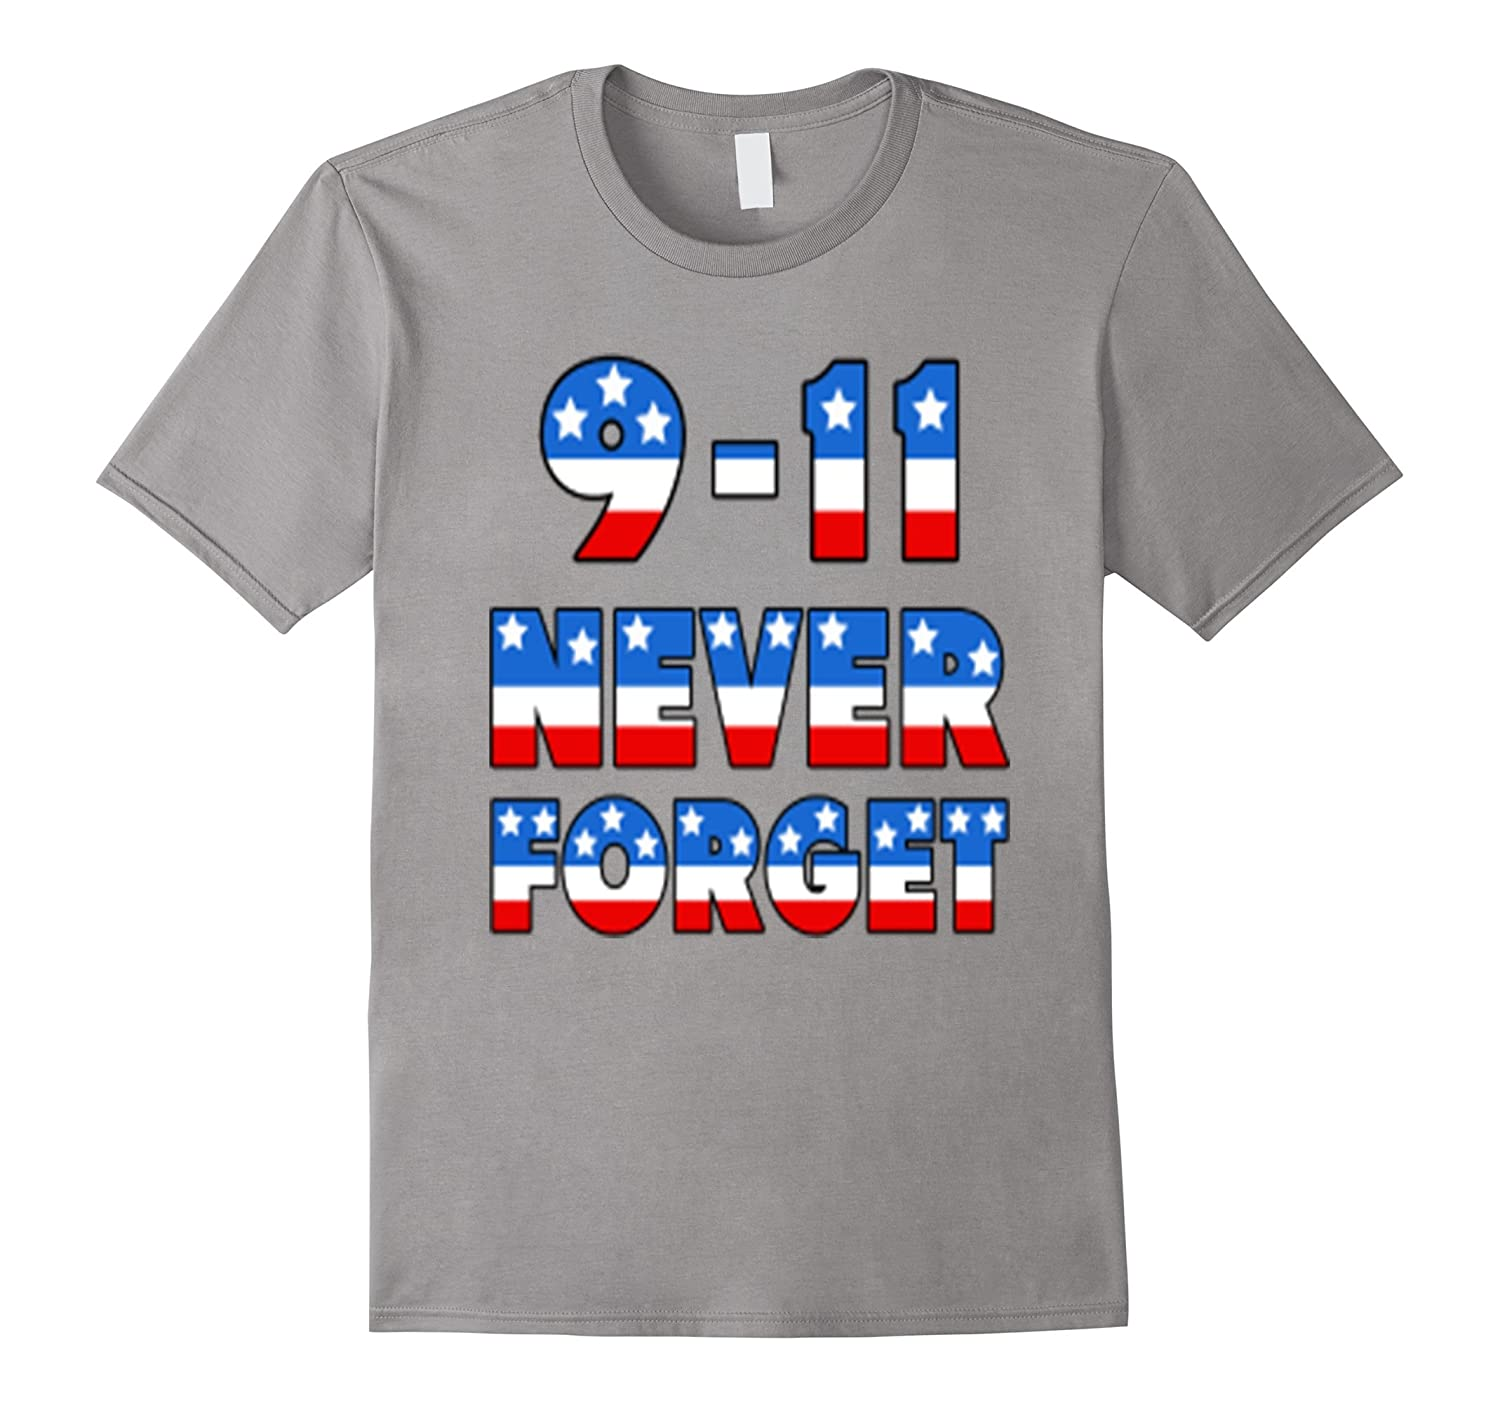 9-11 never forget tshirt-Art